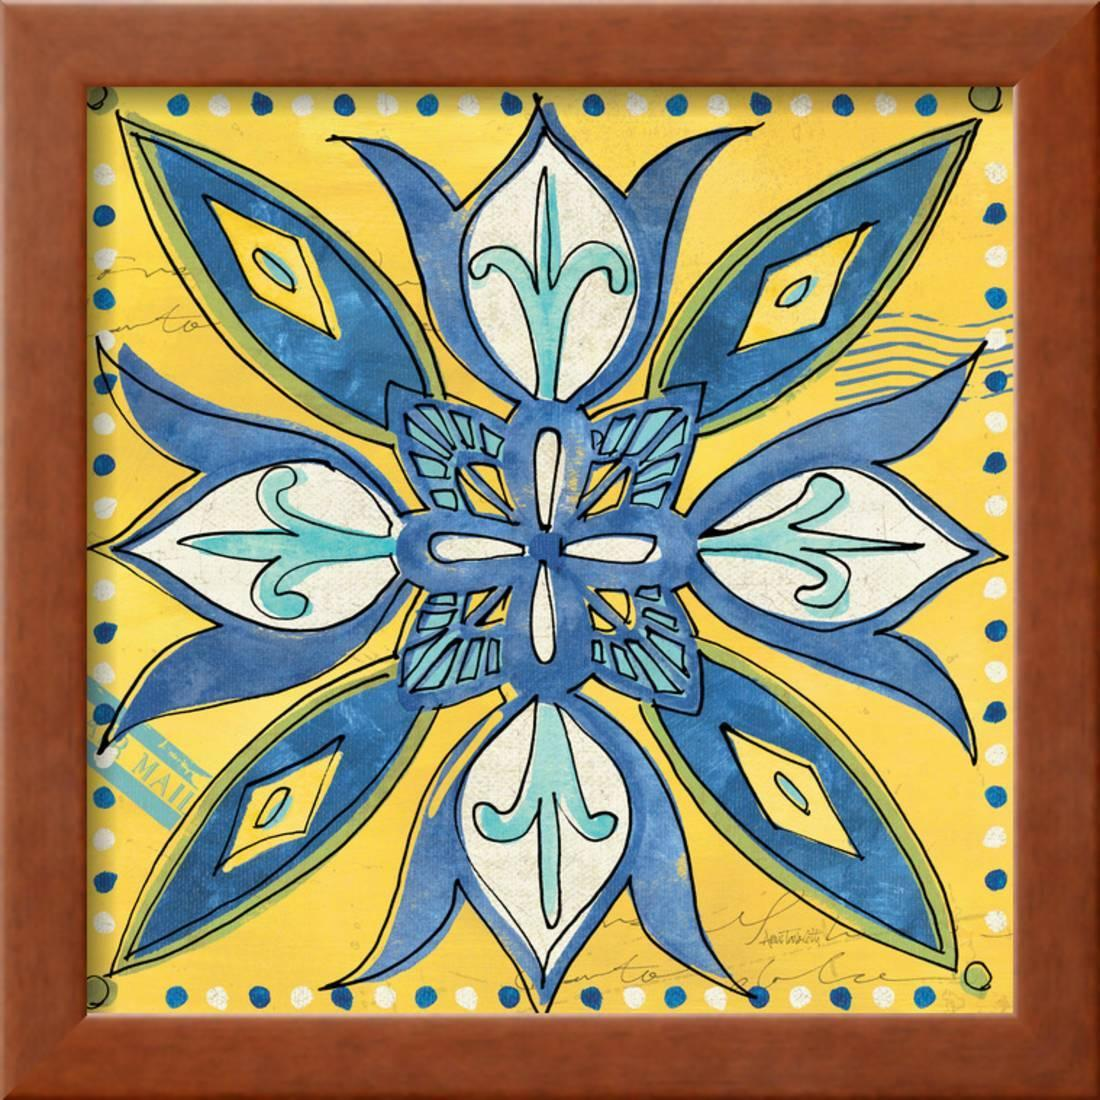 Global Gallery Anne Tavoletti Tuscan Sun Tile III Color Giclee Stretched Canvas Artwork 30 x 30